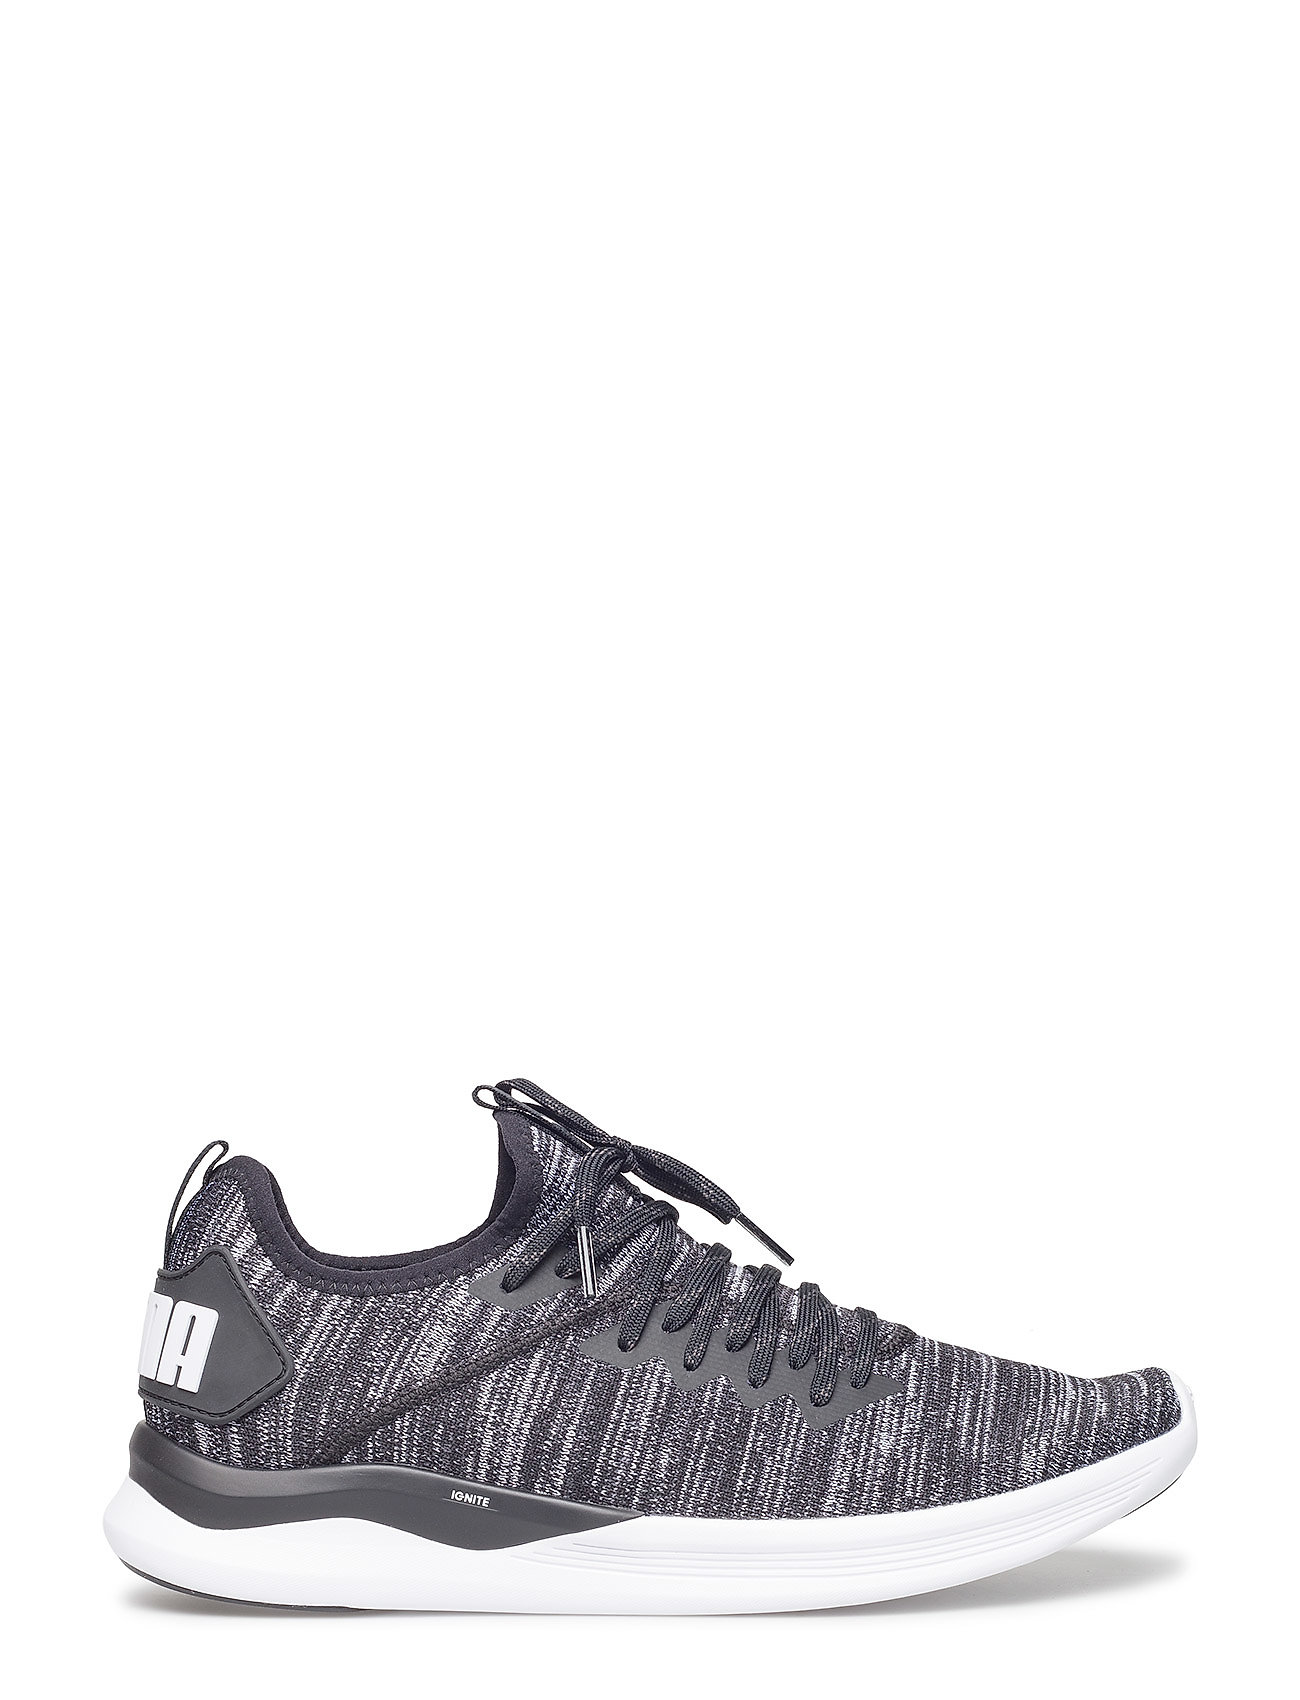 Ignite Flash Evoknit Shoes Sport Shoes Training Shoes Grå PUMA